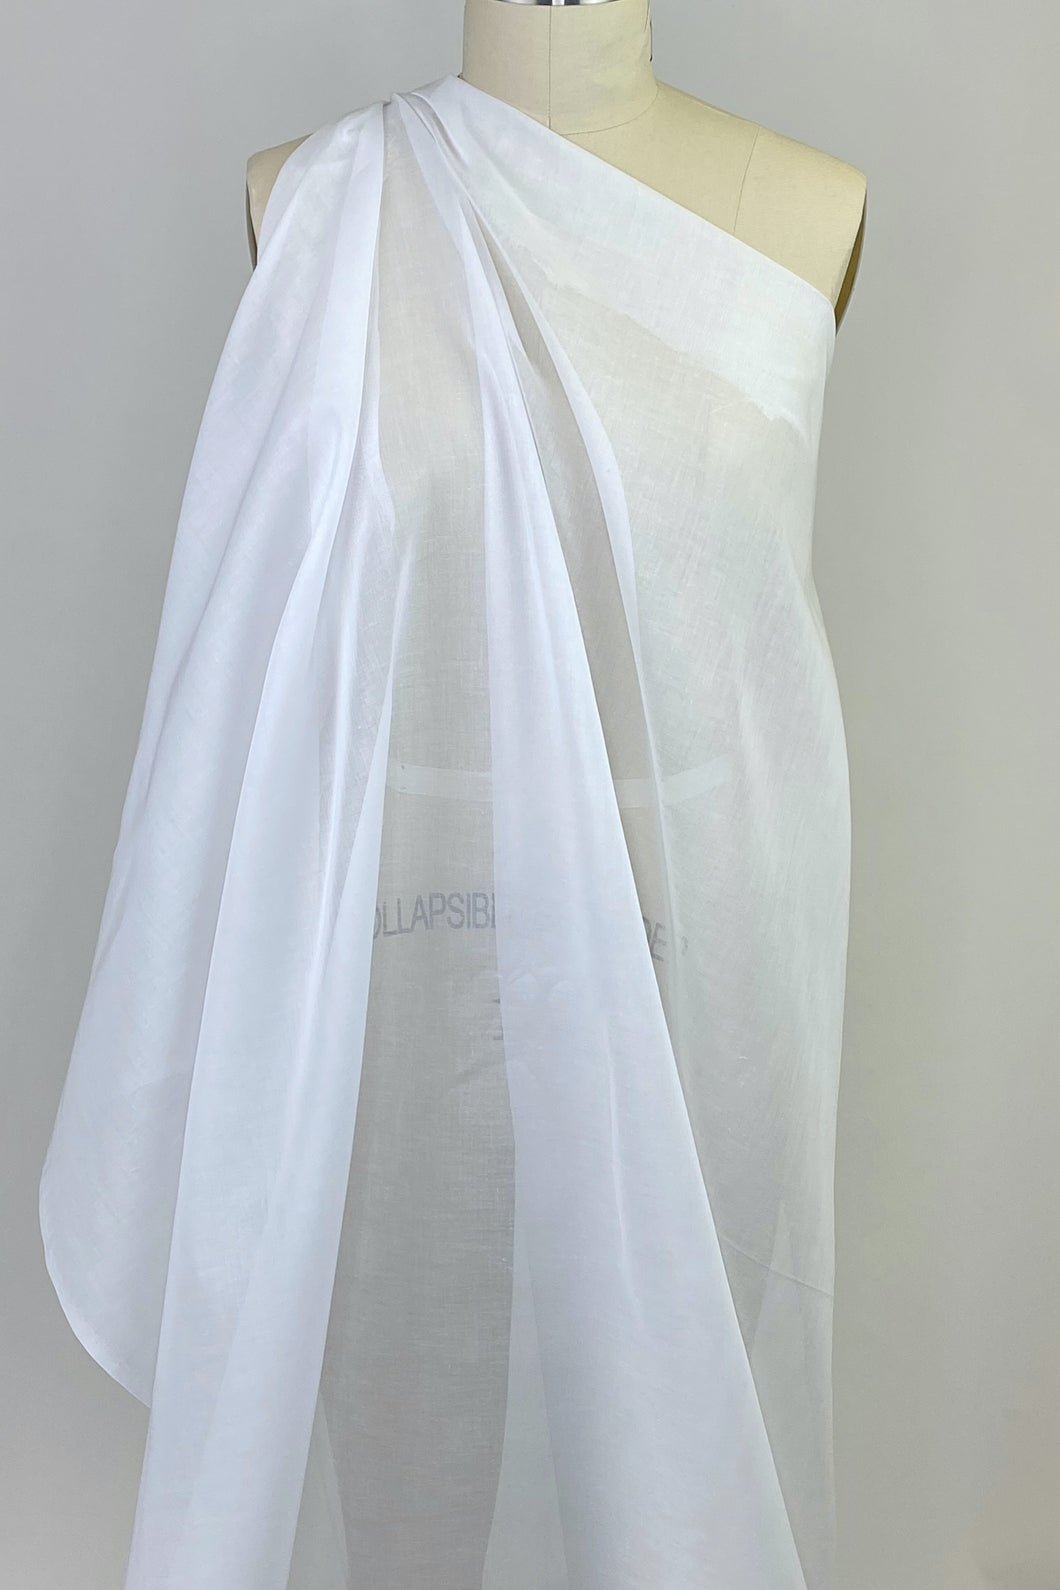 Swiss Cotton Voile - White